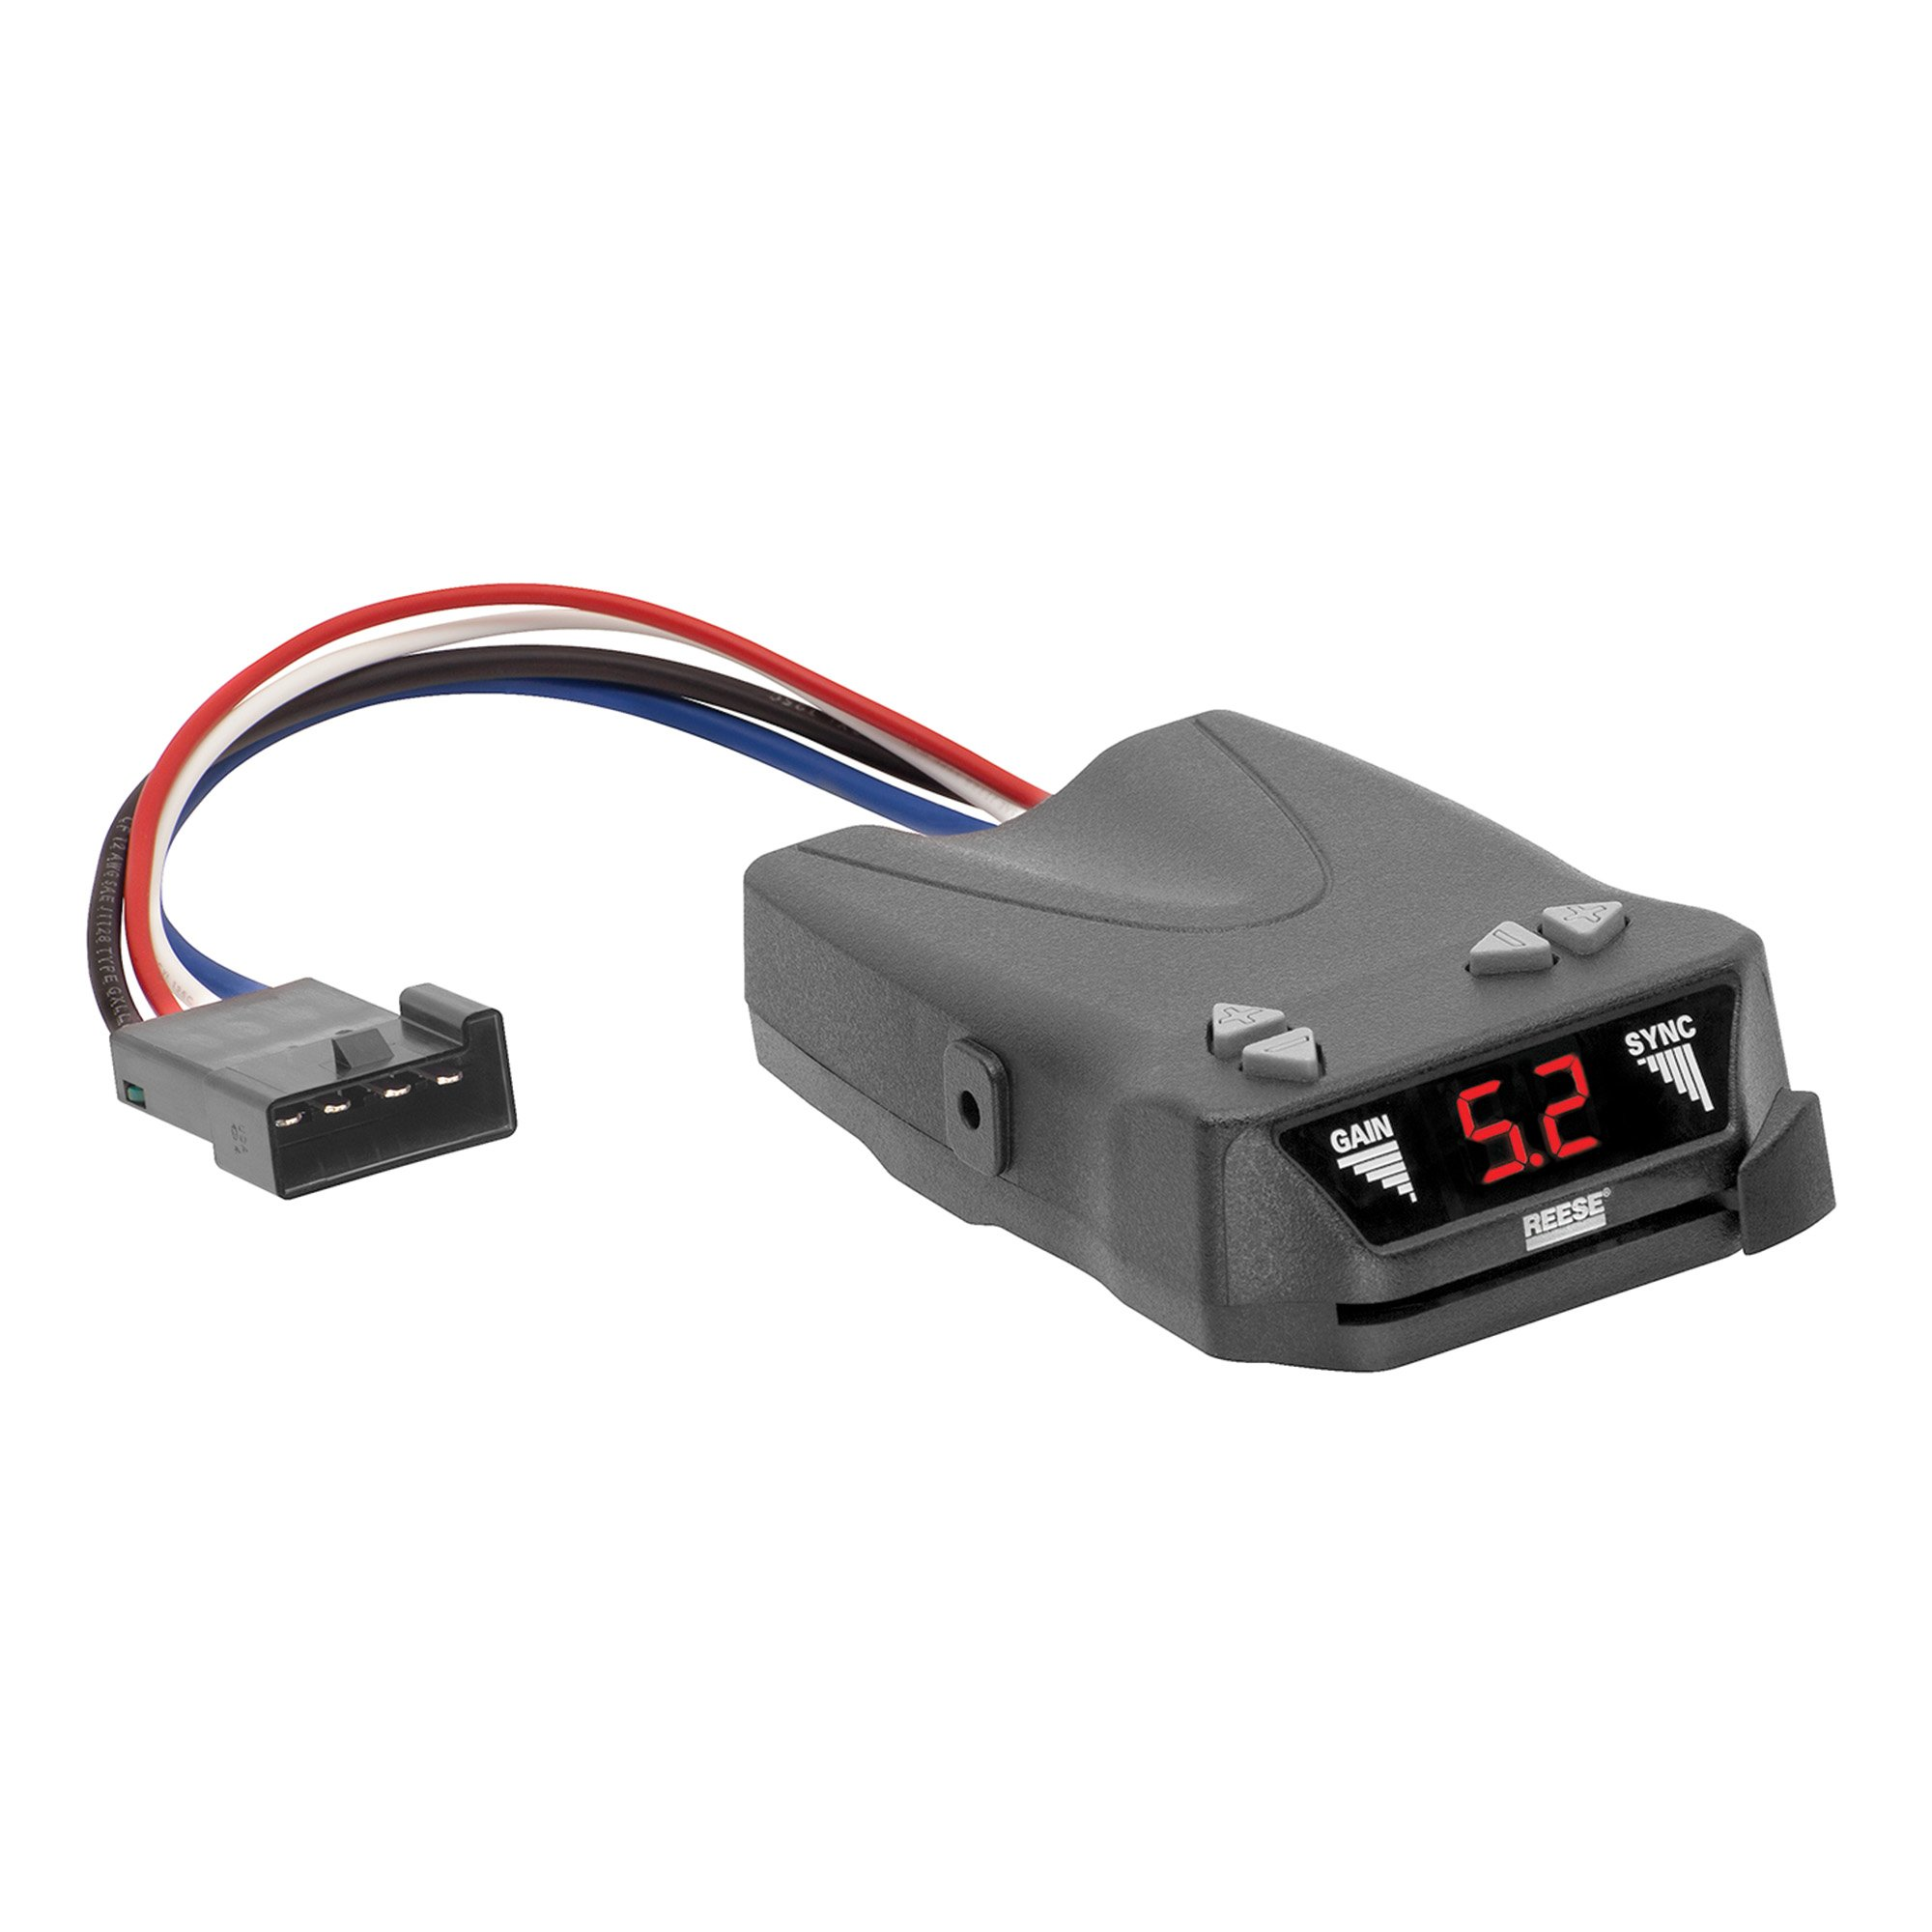 REESE Towpower 8507111 Brakeman IV Digital Brake Control, Small Compact Design by Reese Towpower